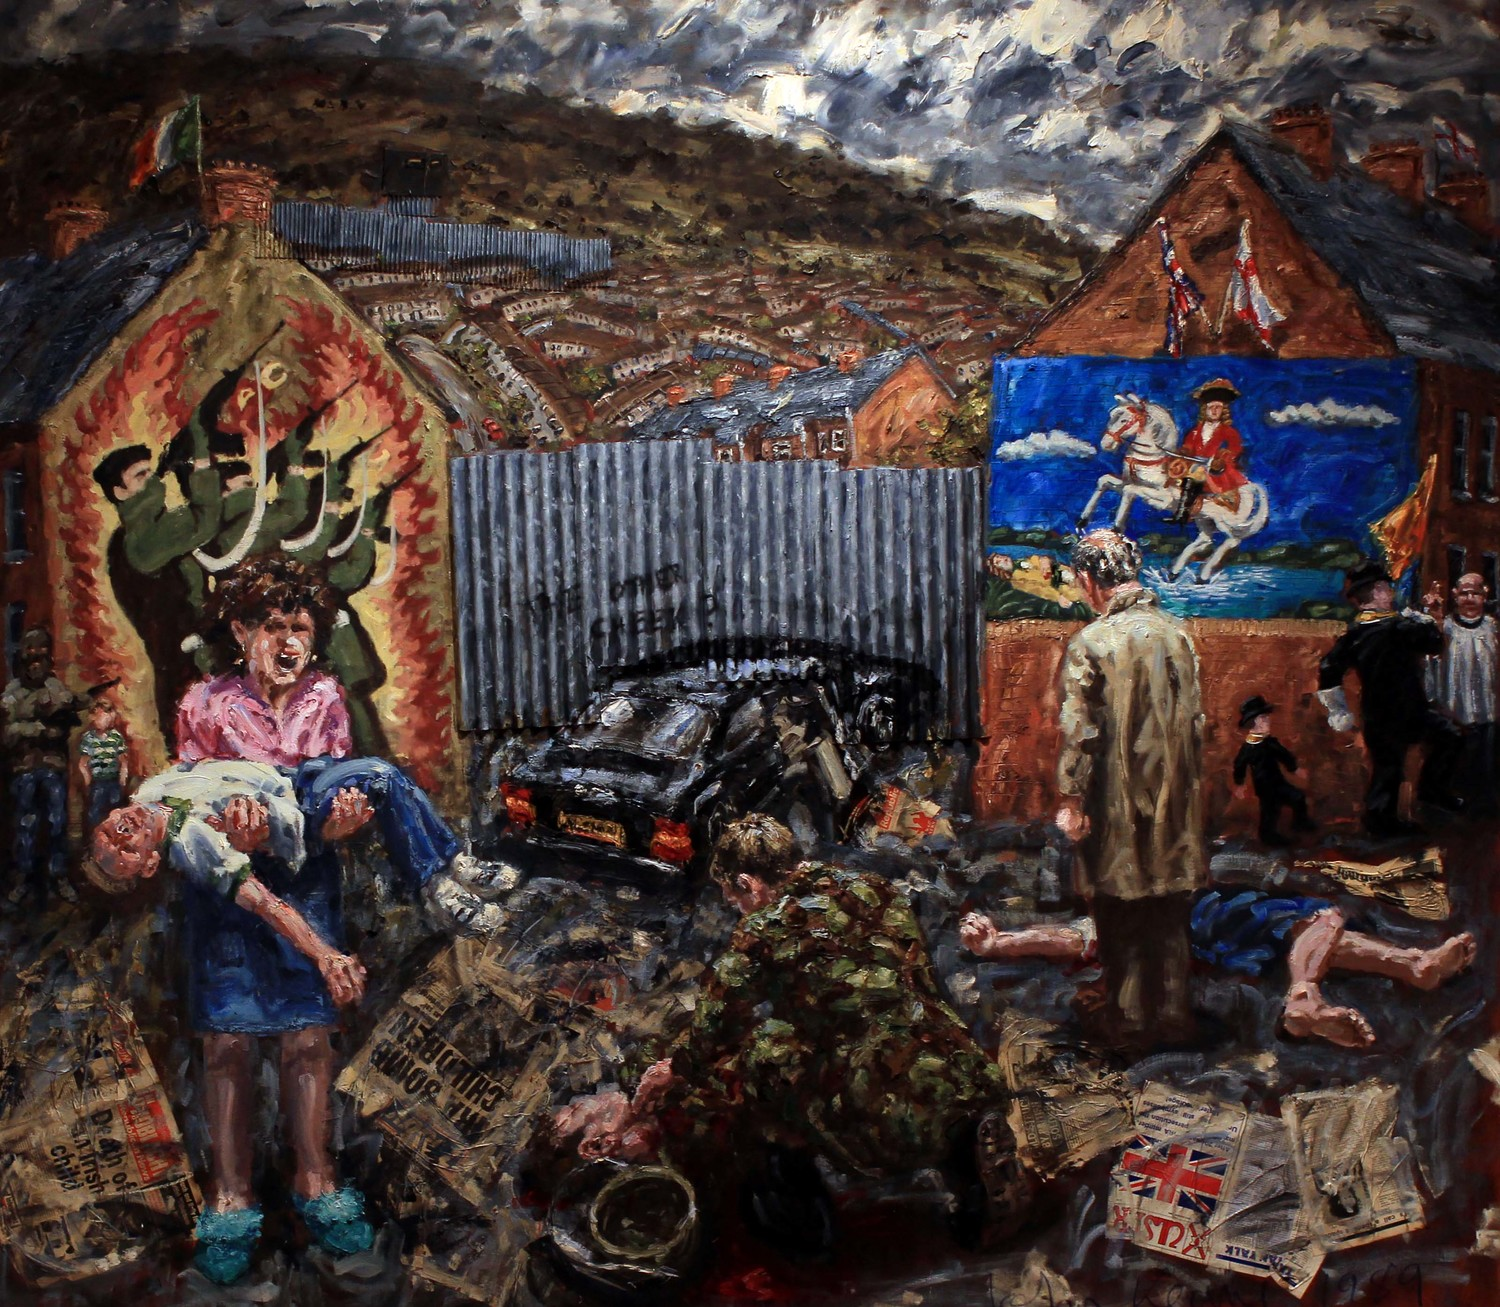 Artwork from a special Ulster Museum exhibition on The Troubles